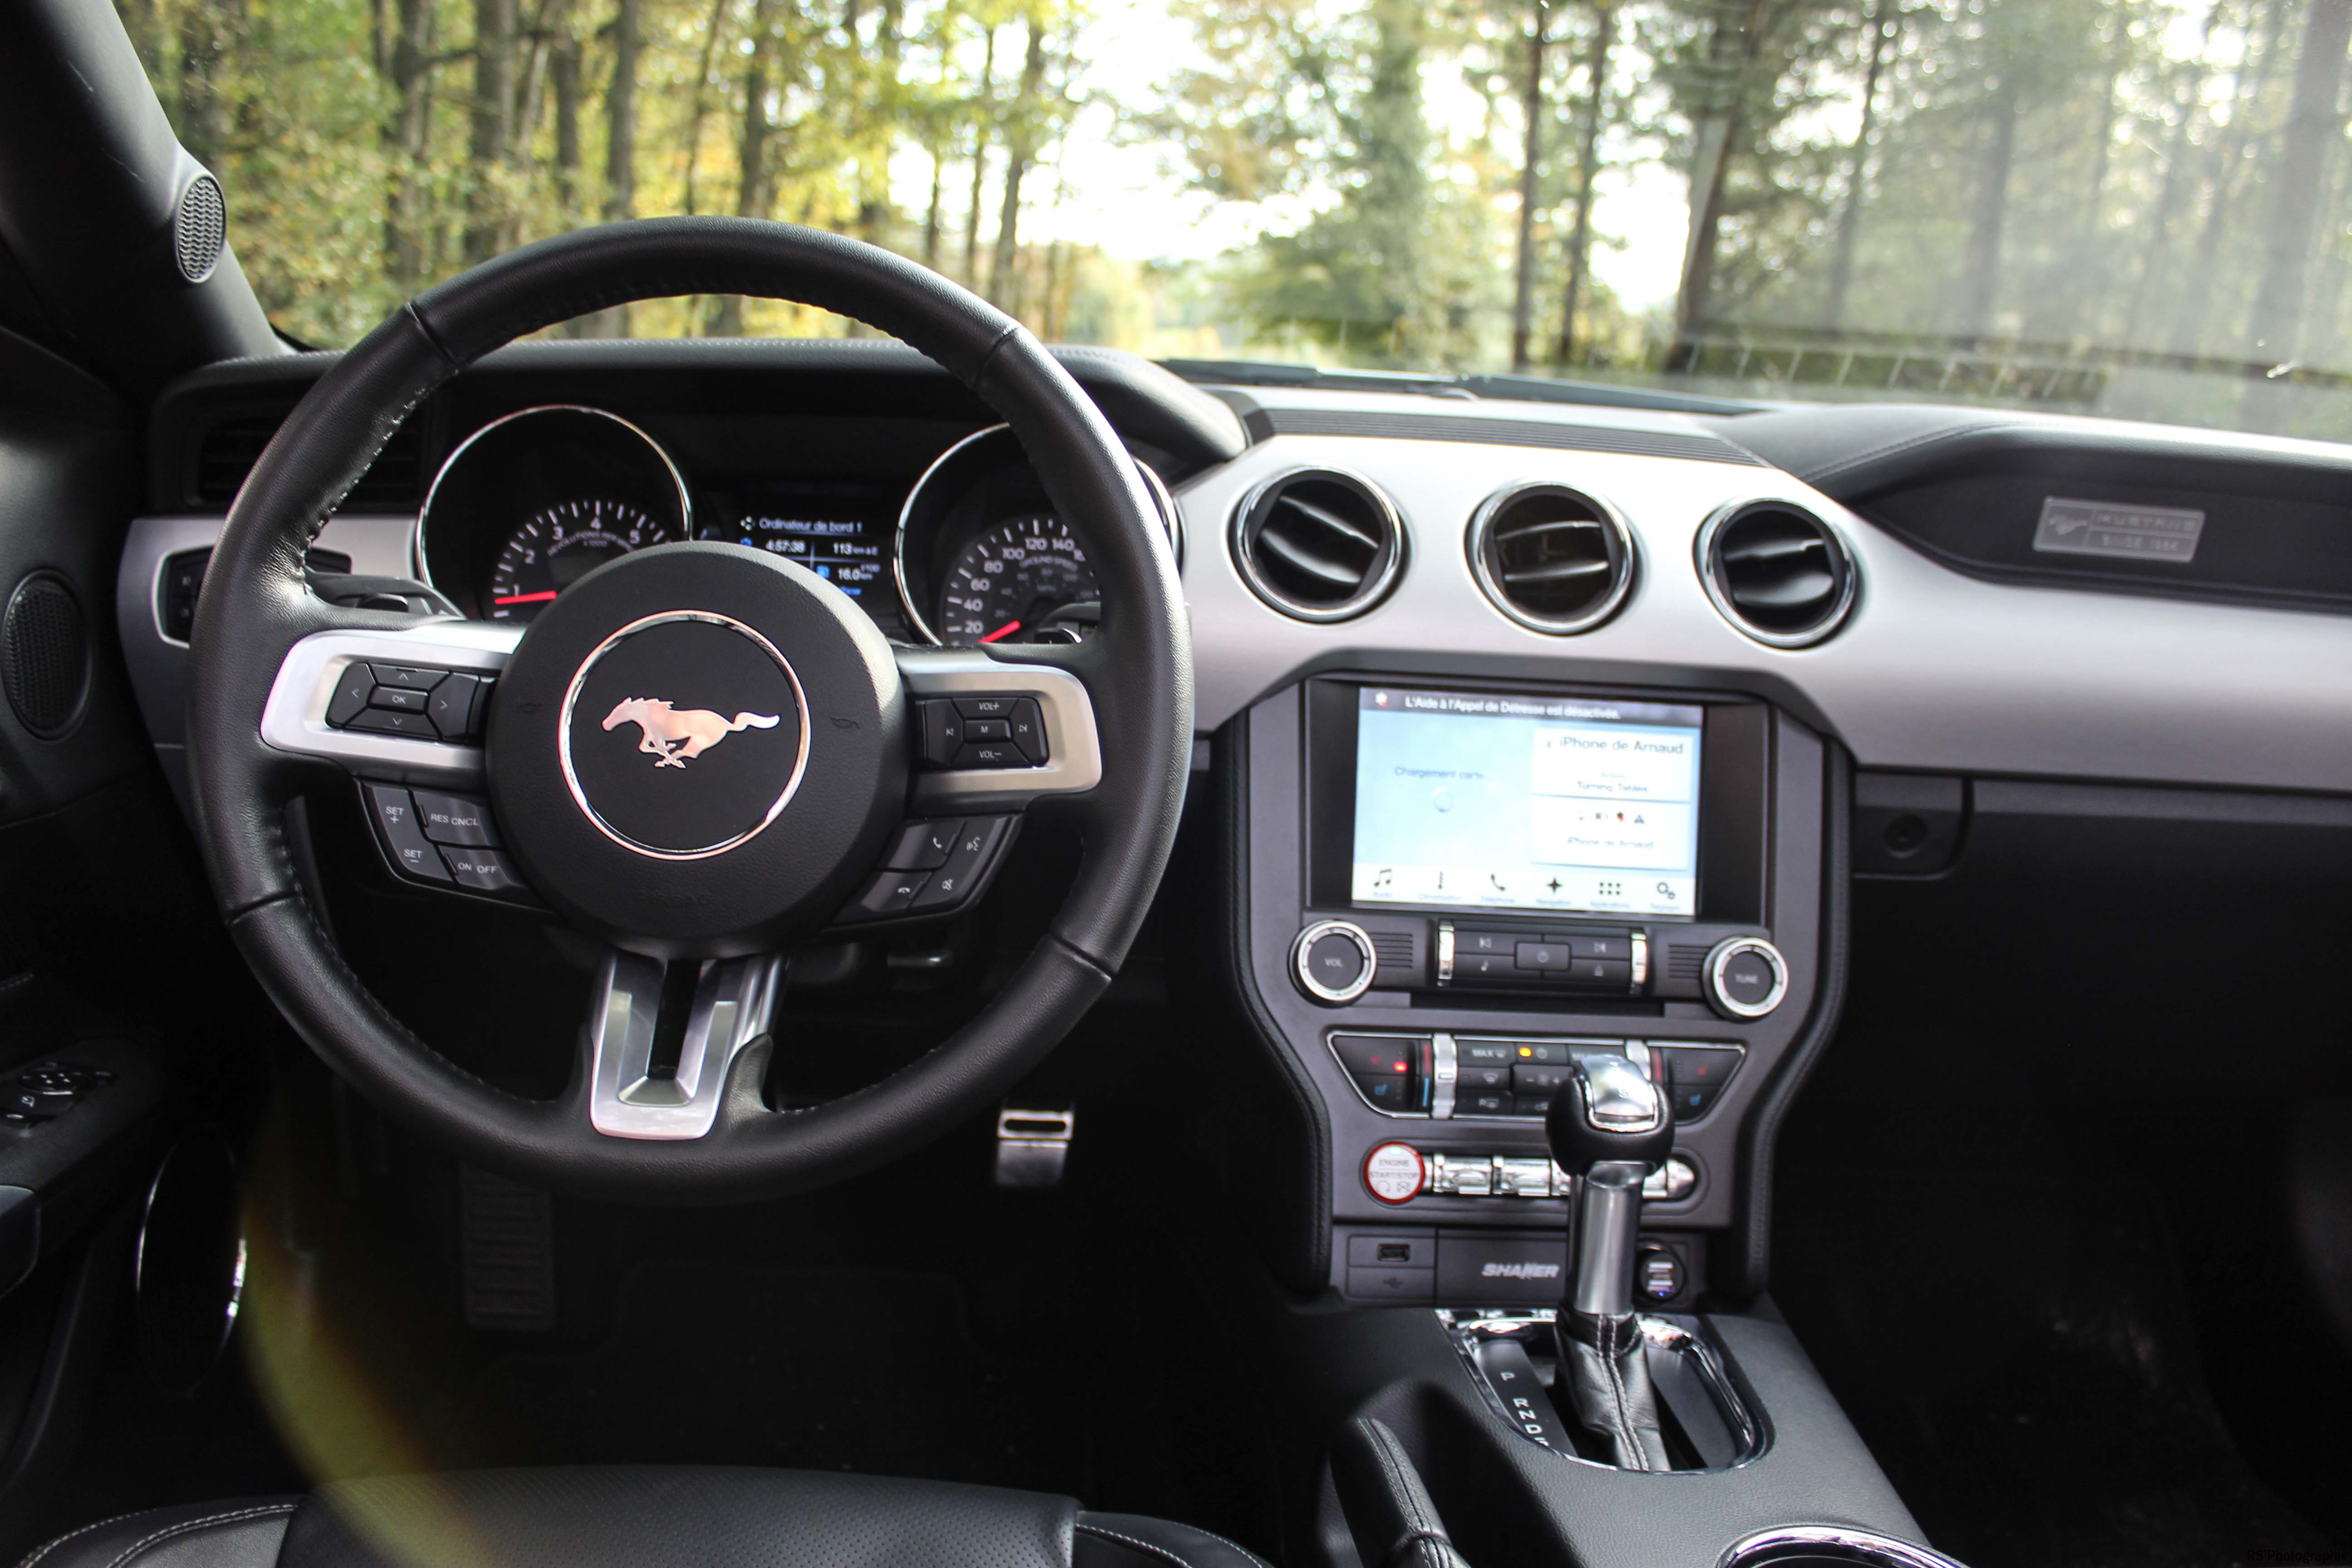 fordmustangeconvertible51-ford-mustang-convertible-ecoboost-intérieur-onboard-Arnaud Demasier-RSPhotographie